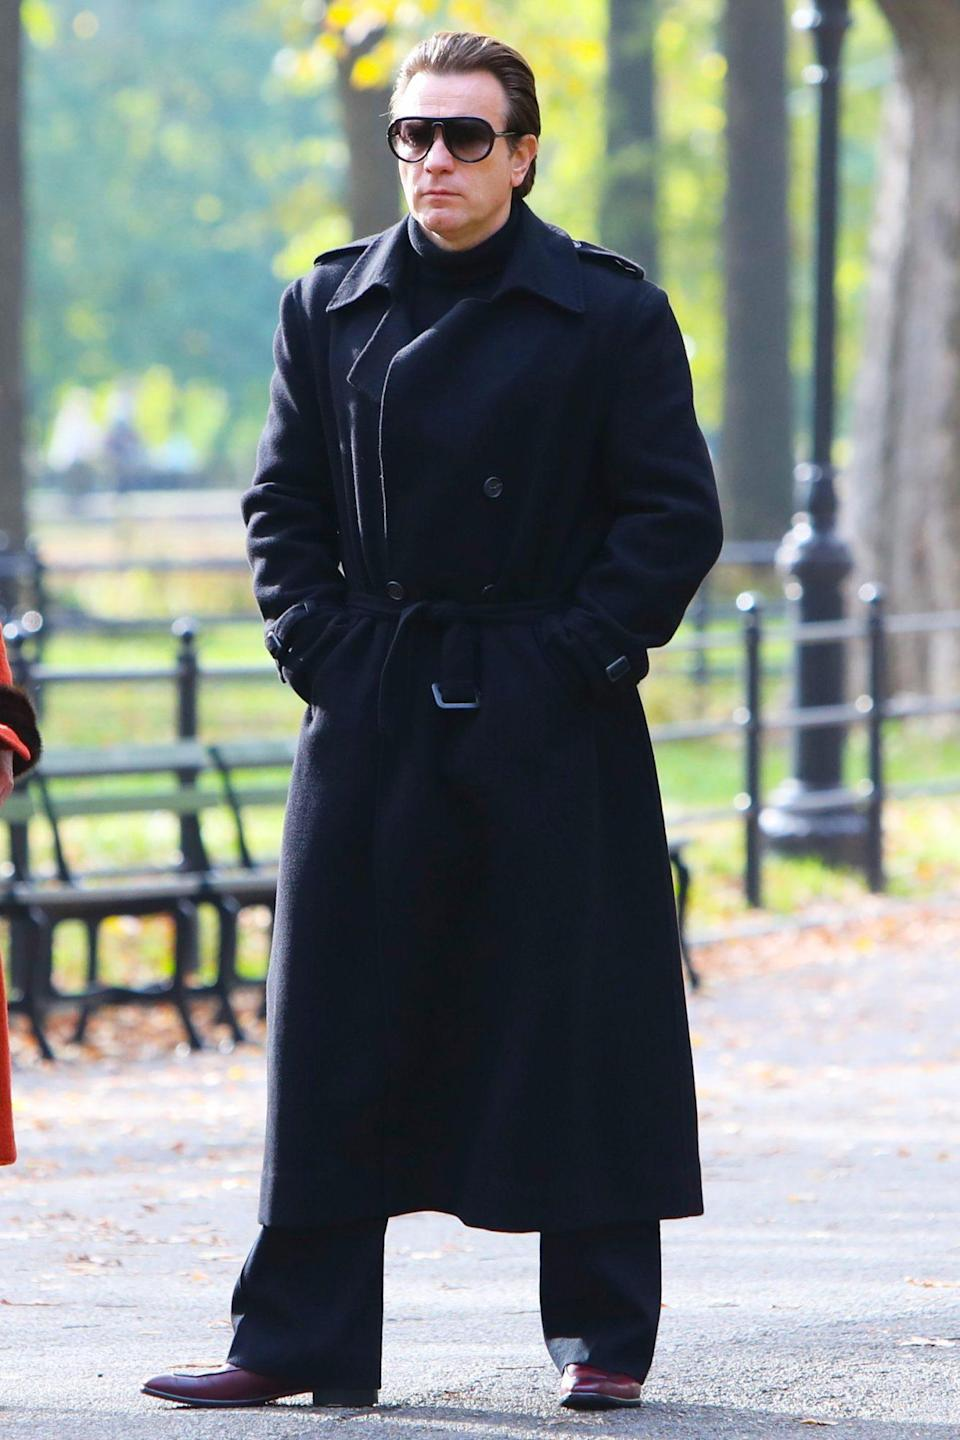 <p>Ewan McGregor goes incognito in all black while on the set of <em>Simply Halston </em>in N.Y.C. on Thursday.</p>